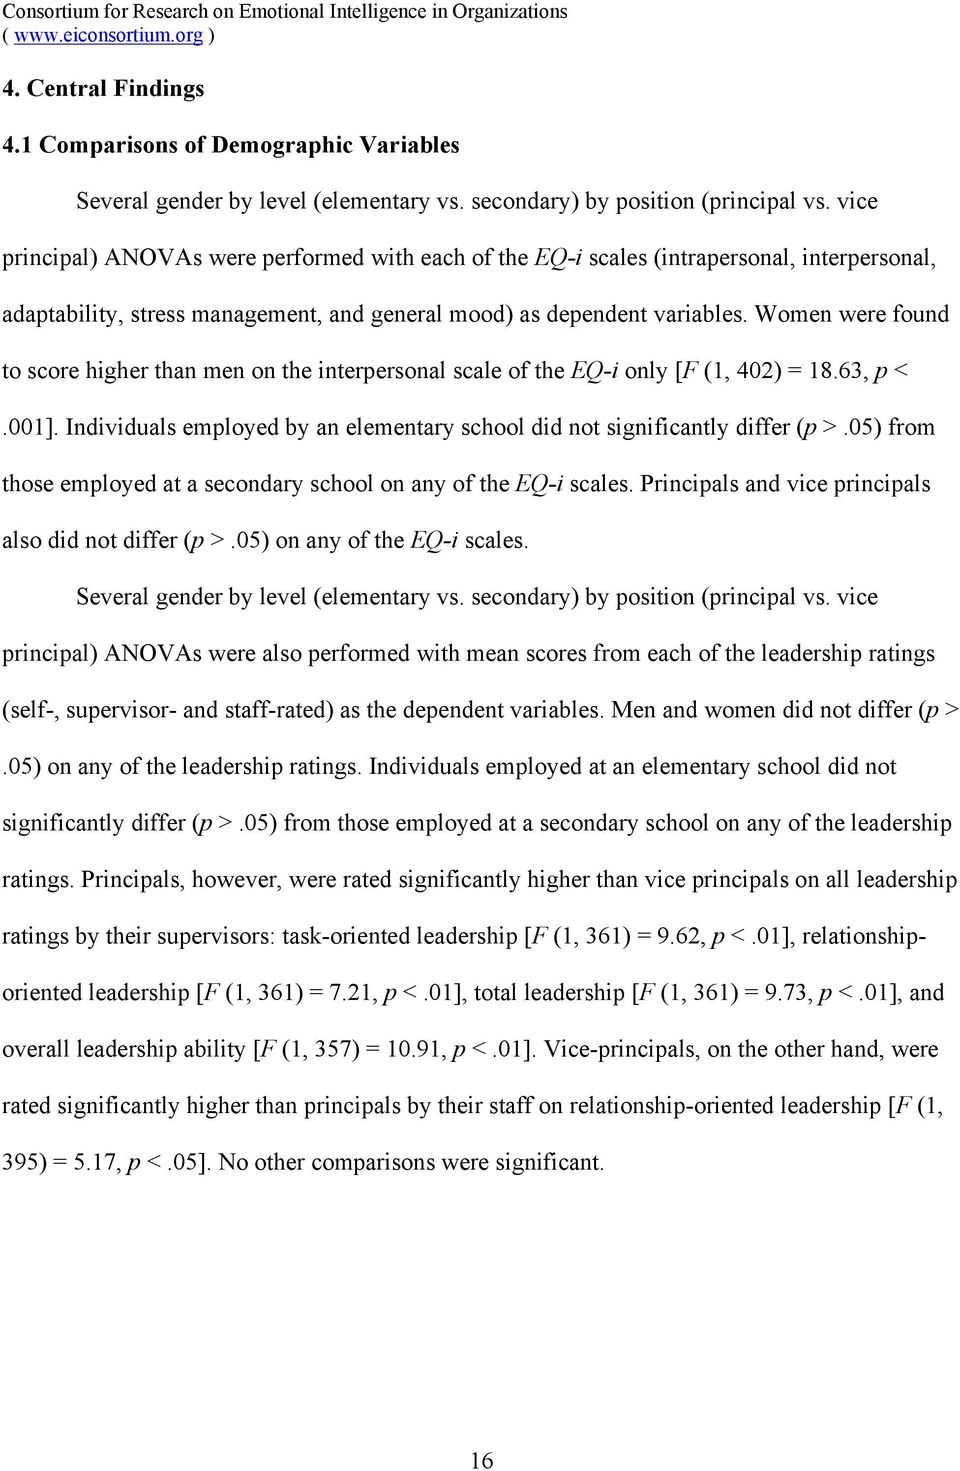 Women were found to score higher than men on the interpersonal scale of the EQ-i only [F (1, 402) = 18.63, p <.001]. Individuals employed by an elementary school did not significantly differ (p >.